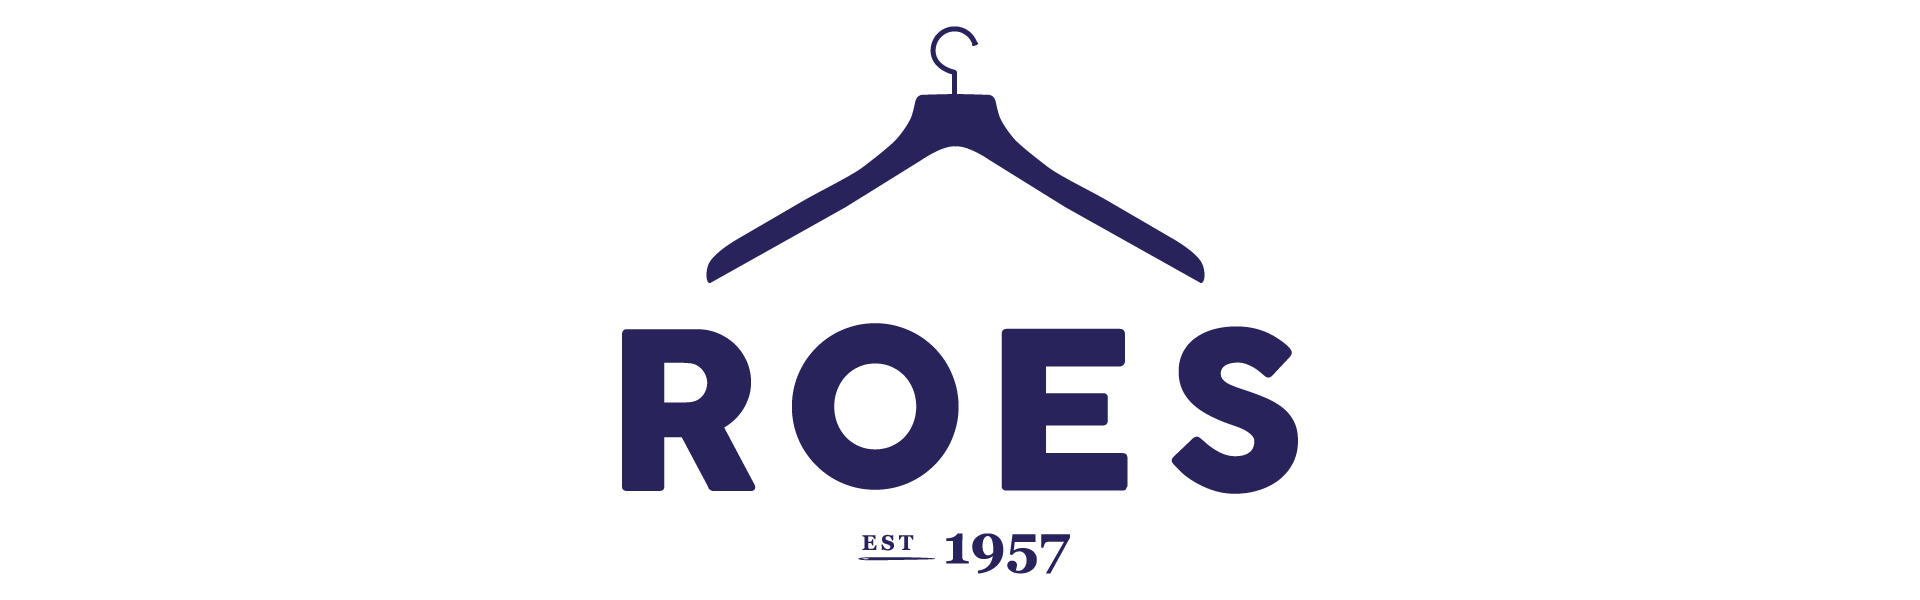 logo-roes